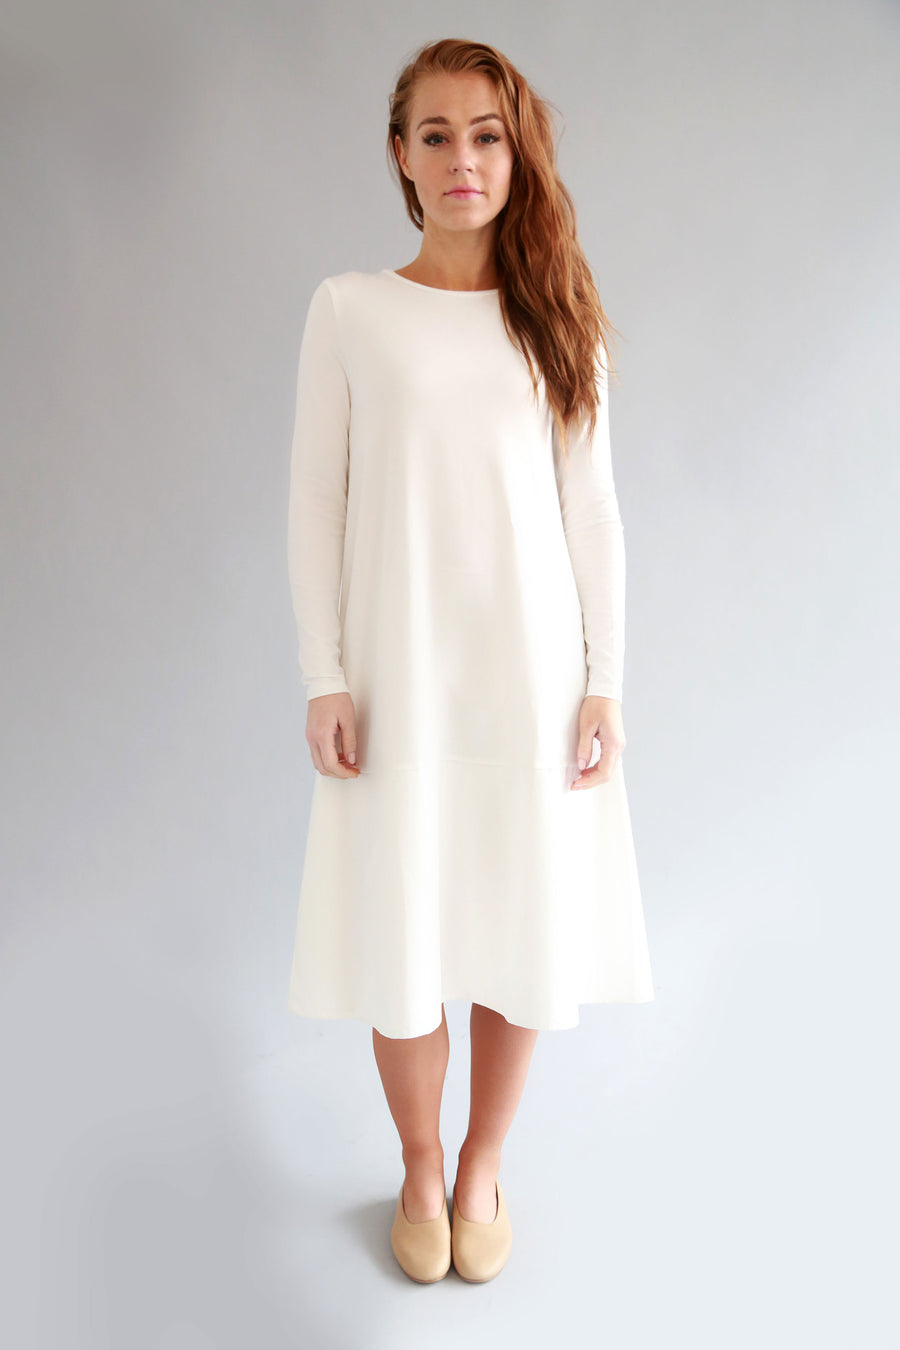 WHITE MIMI DRESS - SOLIKA